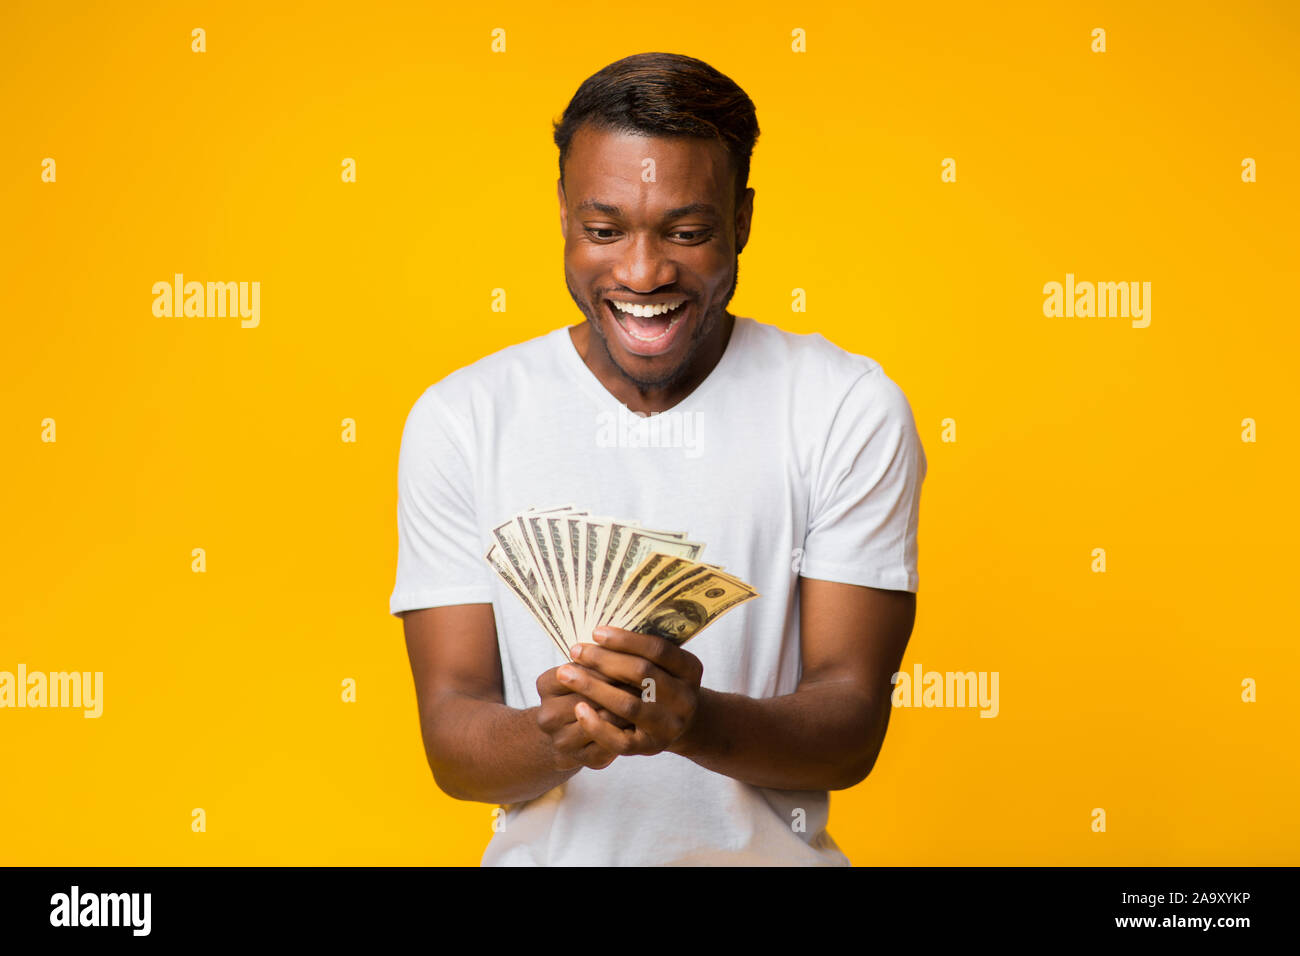 Happy Afro Man Holding Money Standing Over Yellow Studio Background Stock Photo